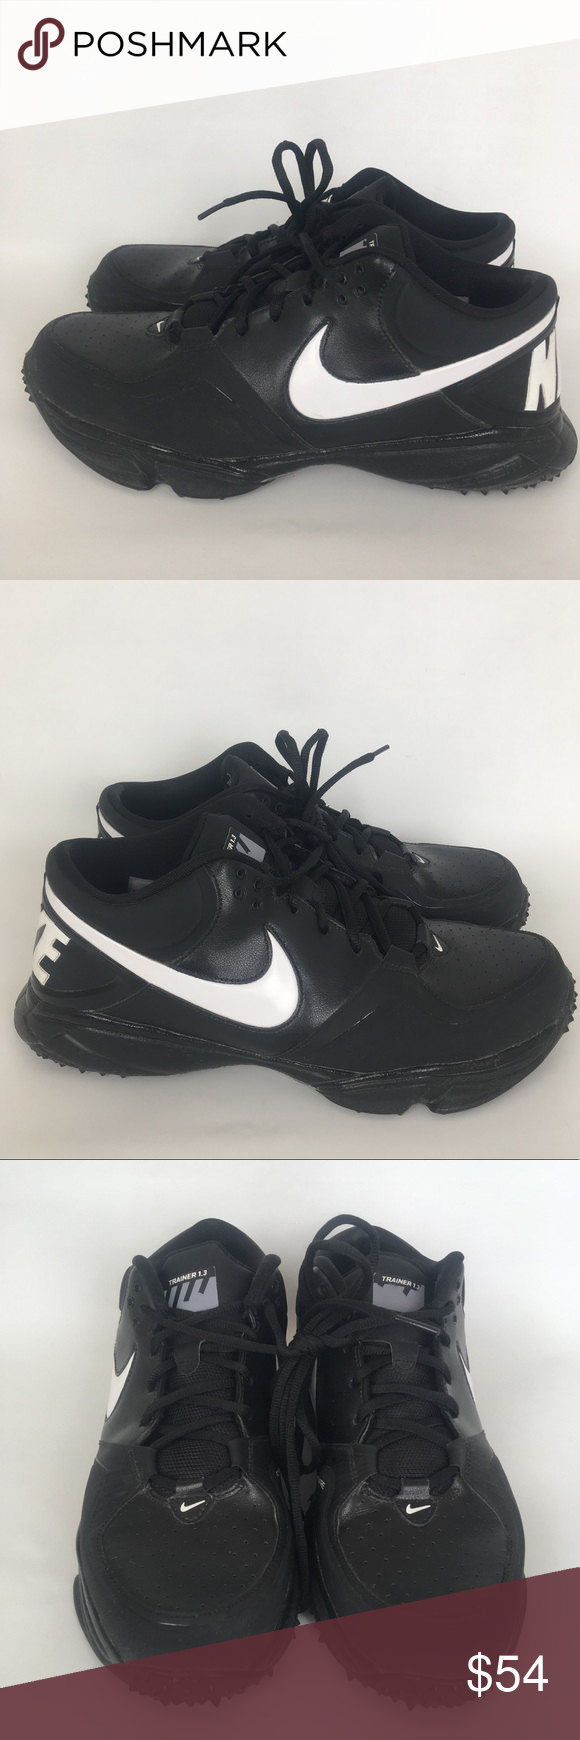 watch d1138 2bb76 Nike flywire sneakers trainer 1.3 size 11 Nike flywire trainer 1.3 sneakers  excellent pre-owned